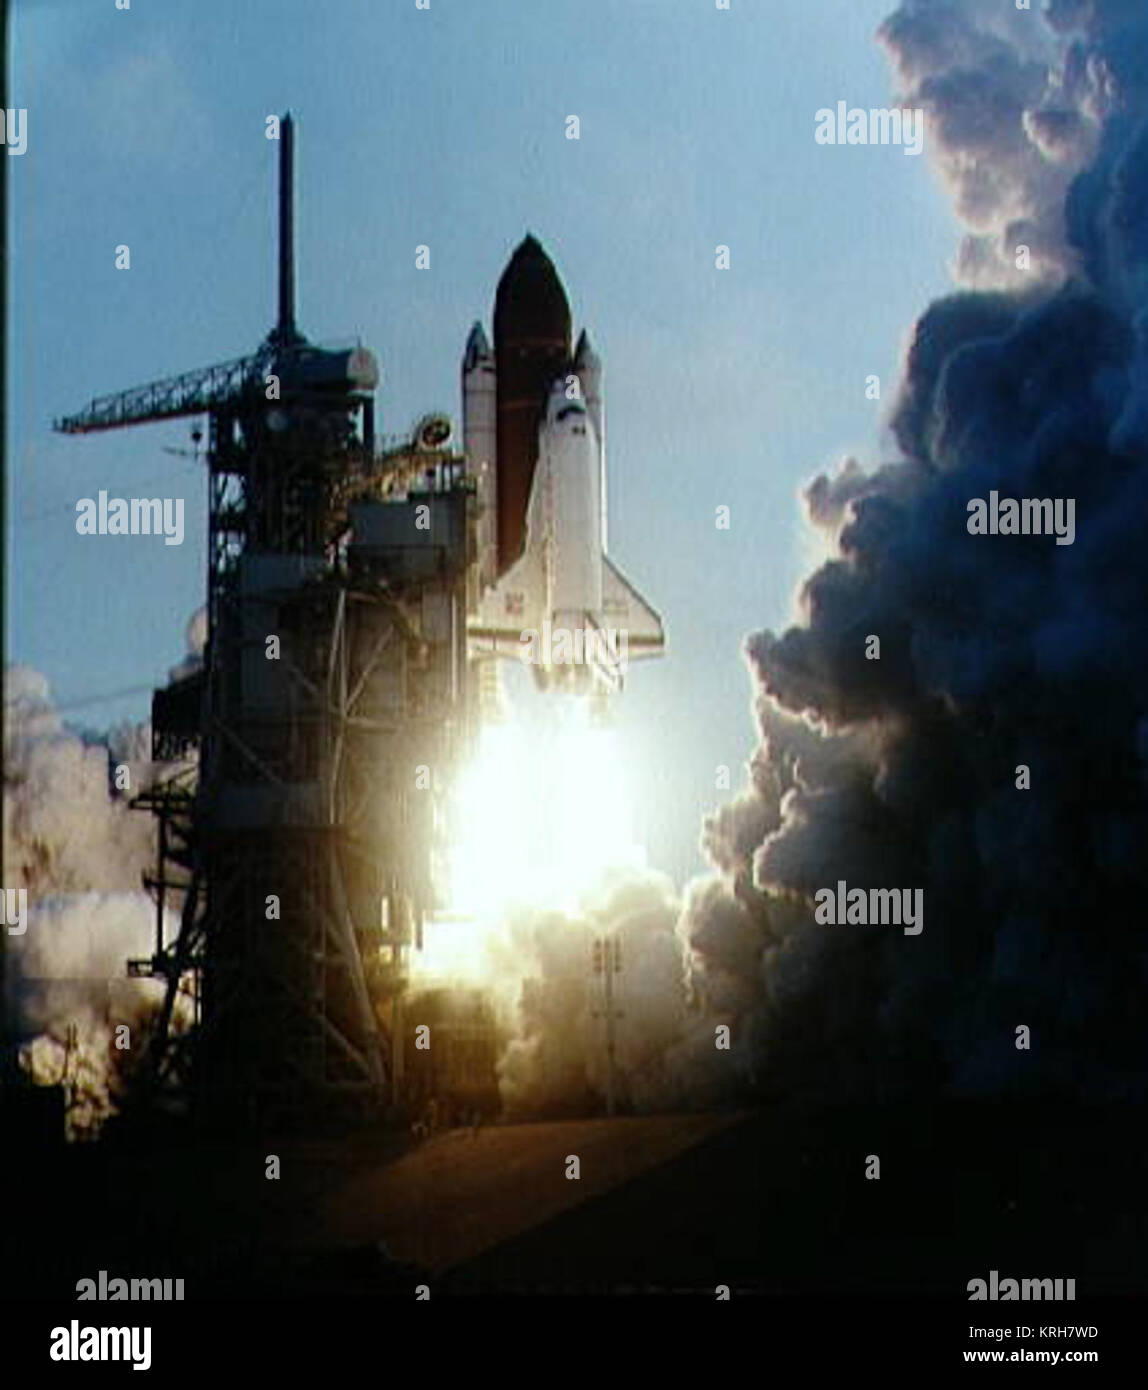 Sts 39 Stock Photos & Sts 39 S...